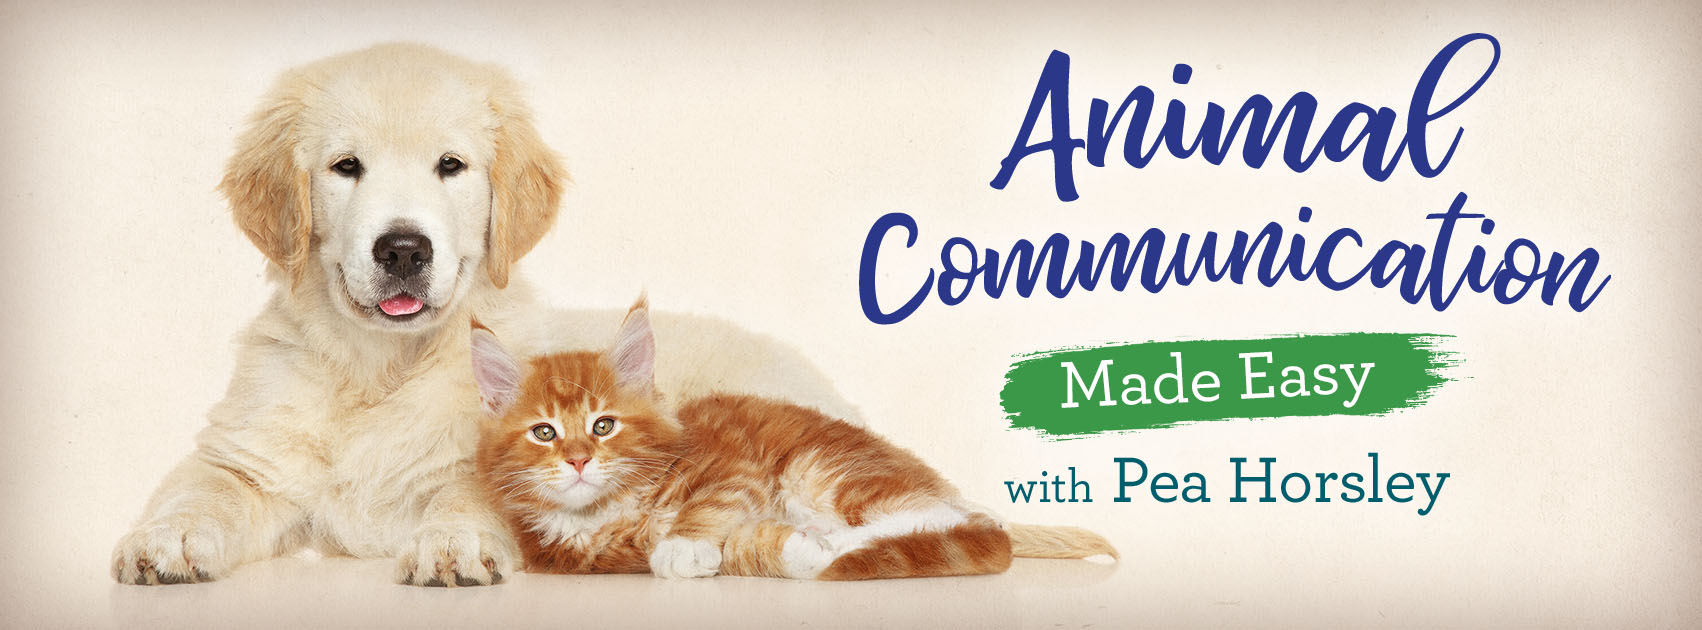 Register for the Animal Communication Made Easy e-course and learn at your own pace. 